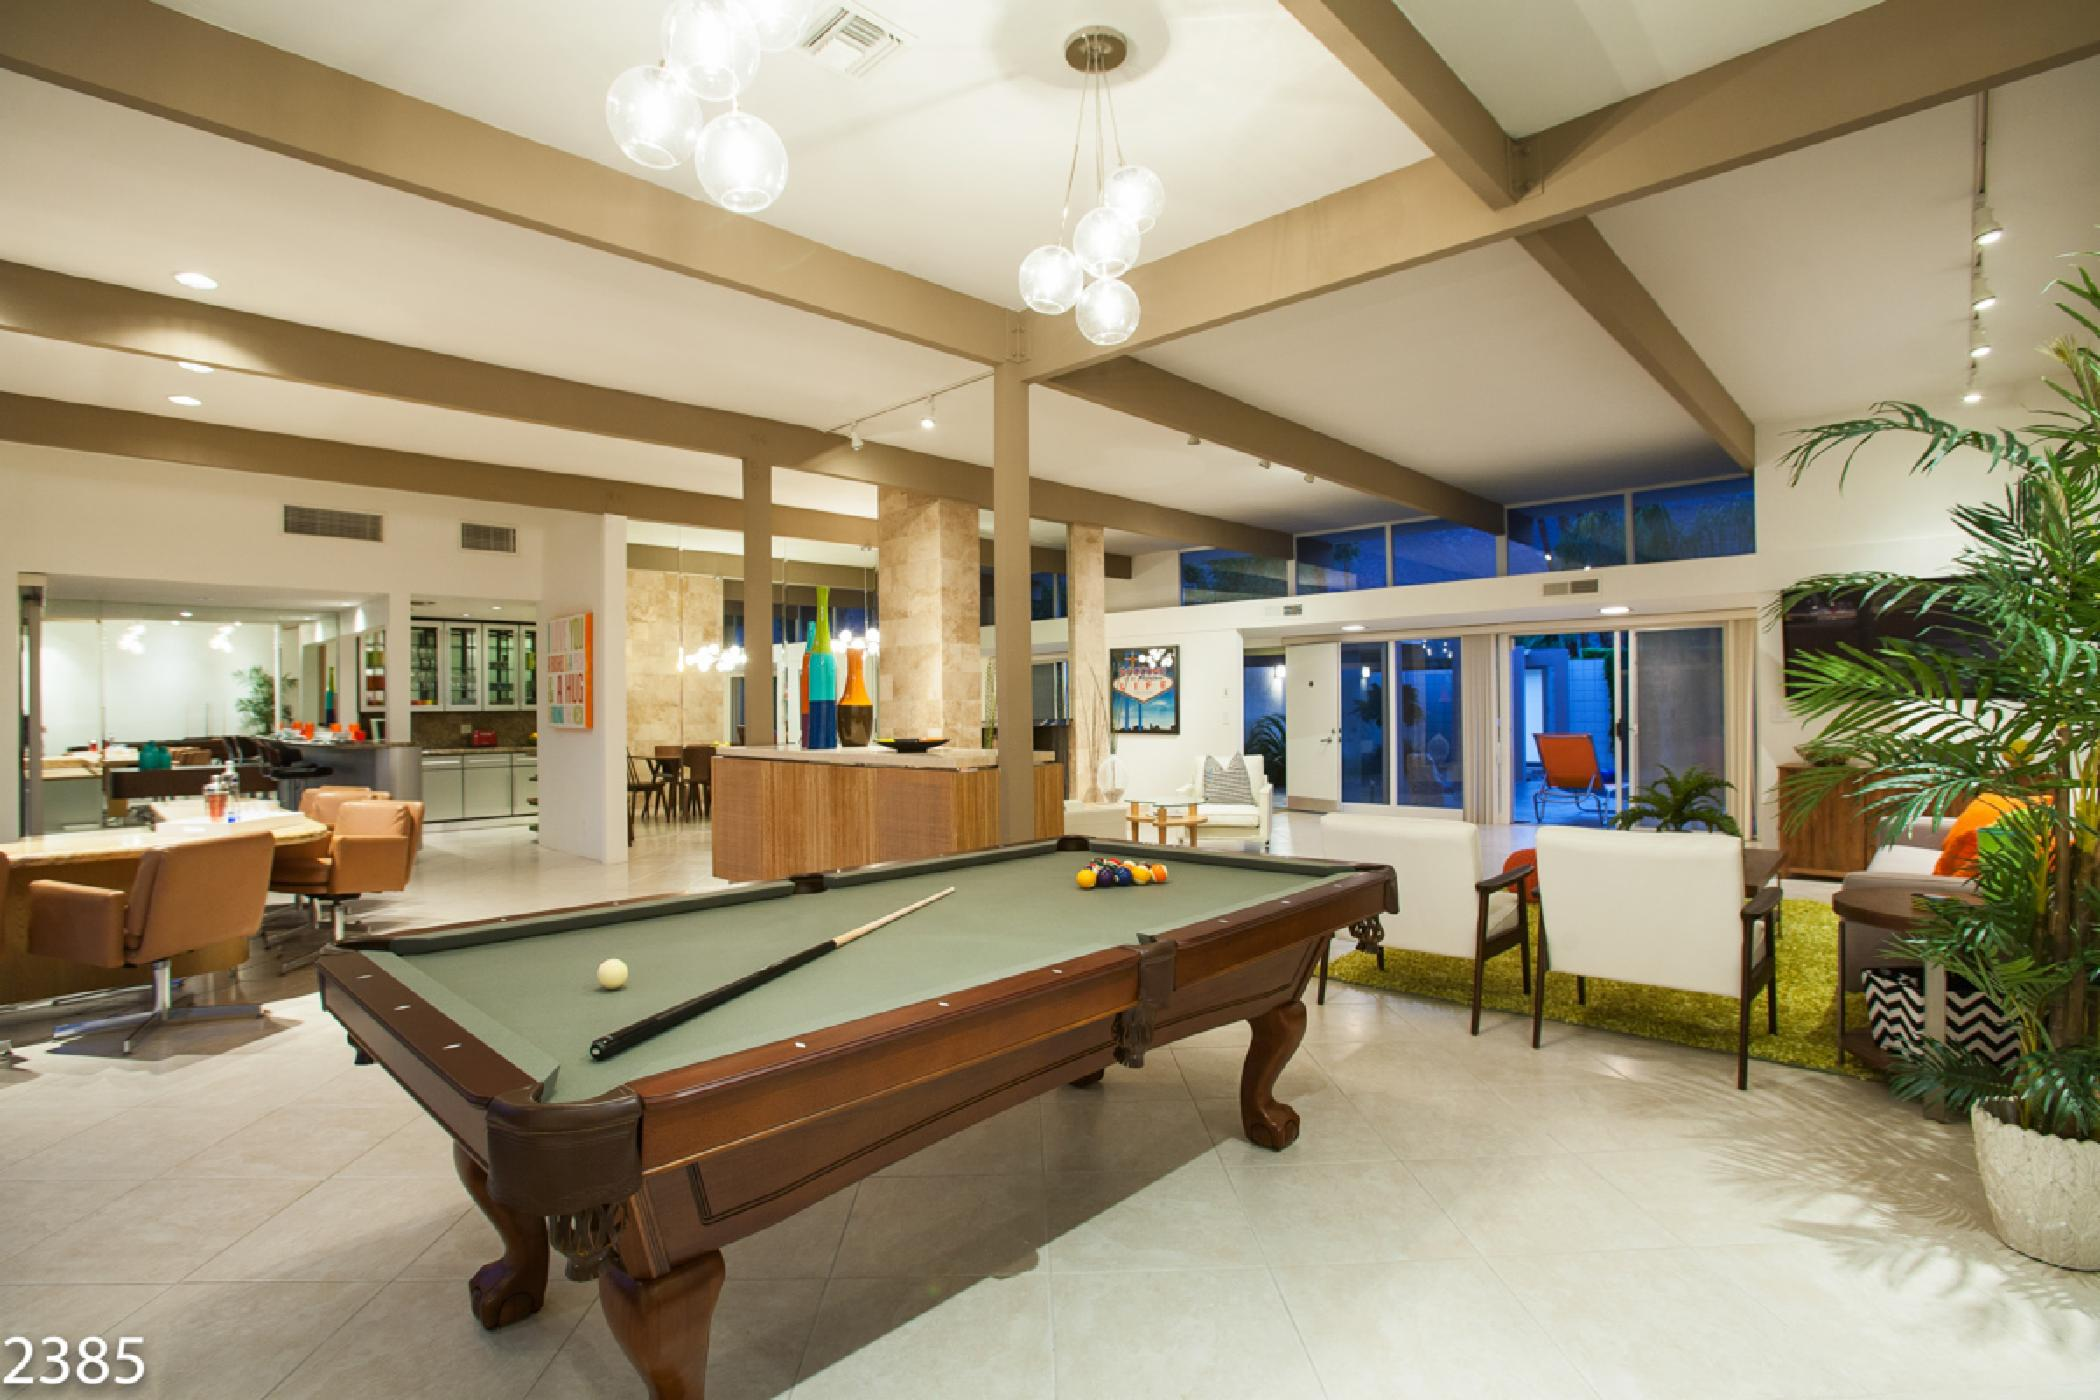 Luxurious Golf Retreat with Pool Table, Bar, and Private Pool